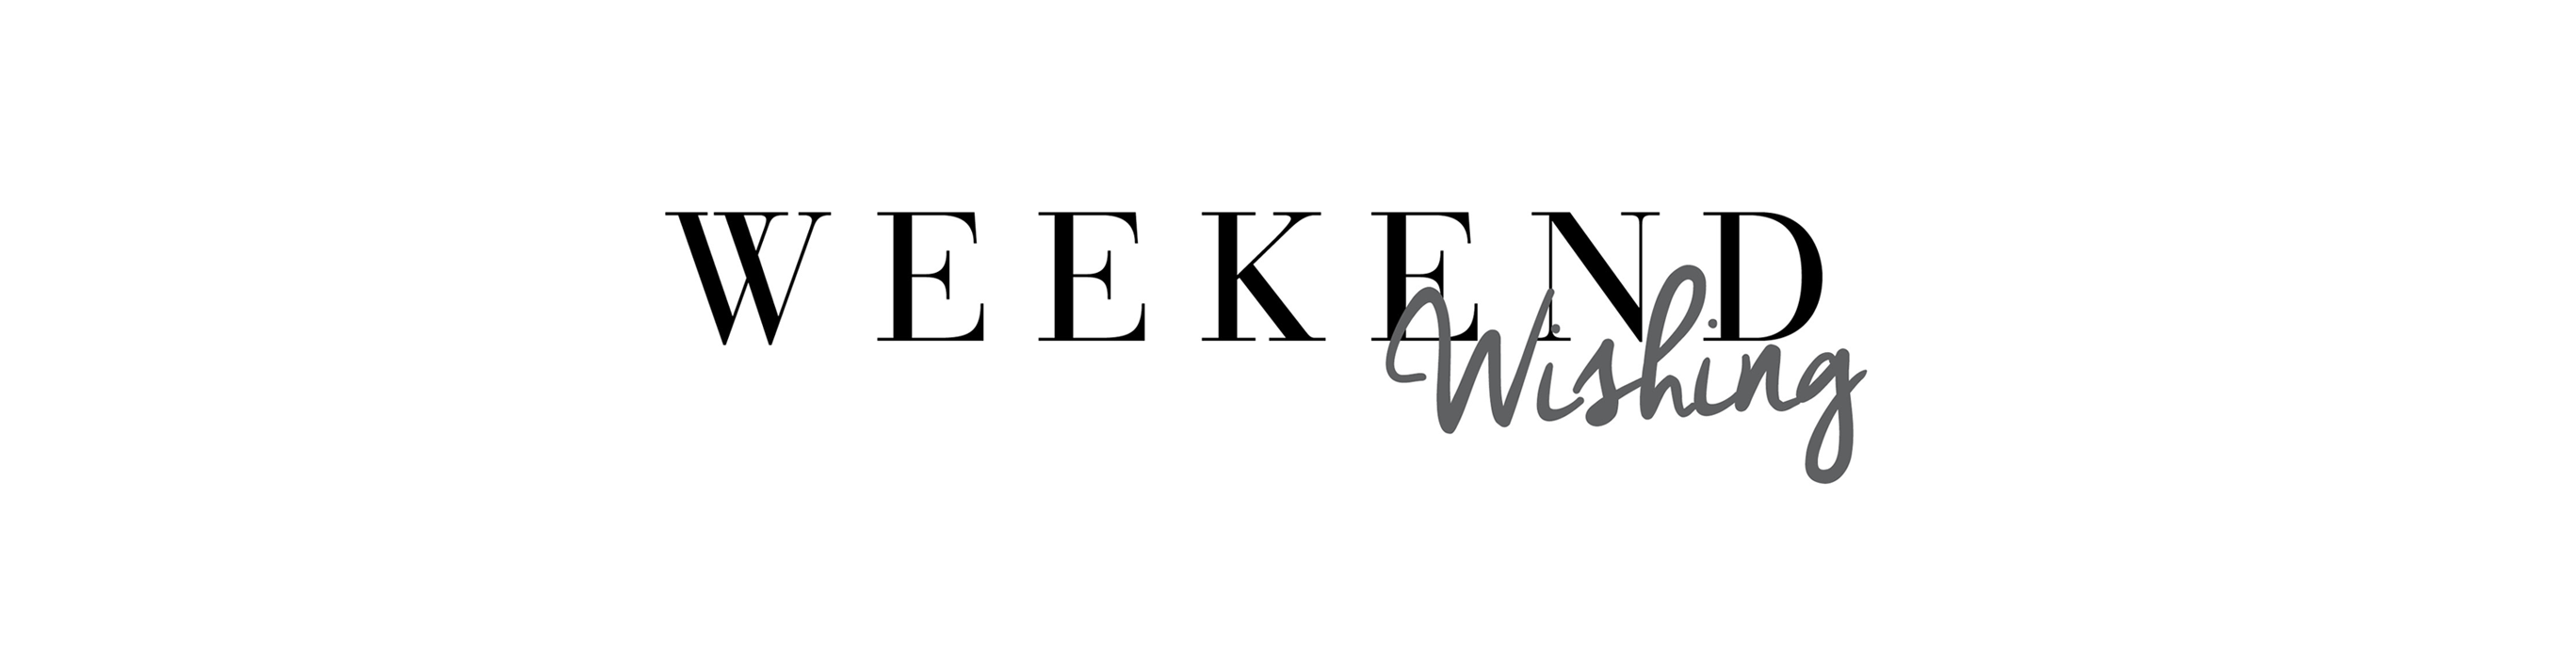 Weekend Wishing